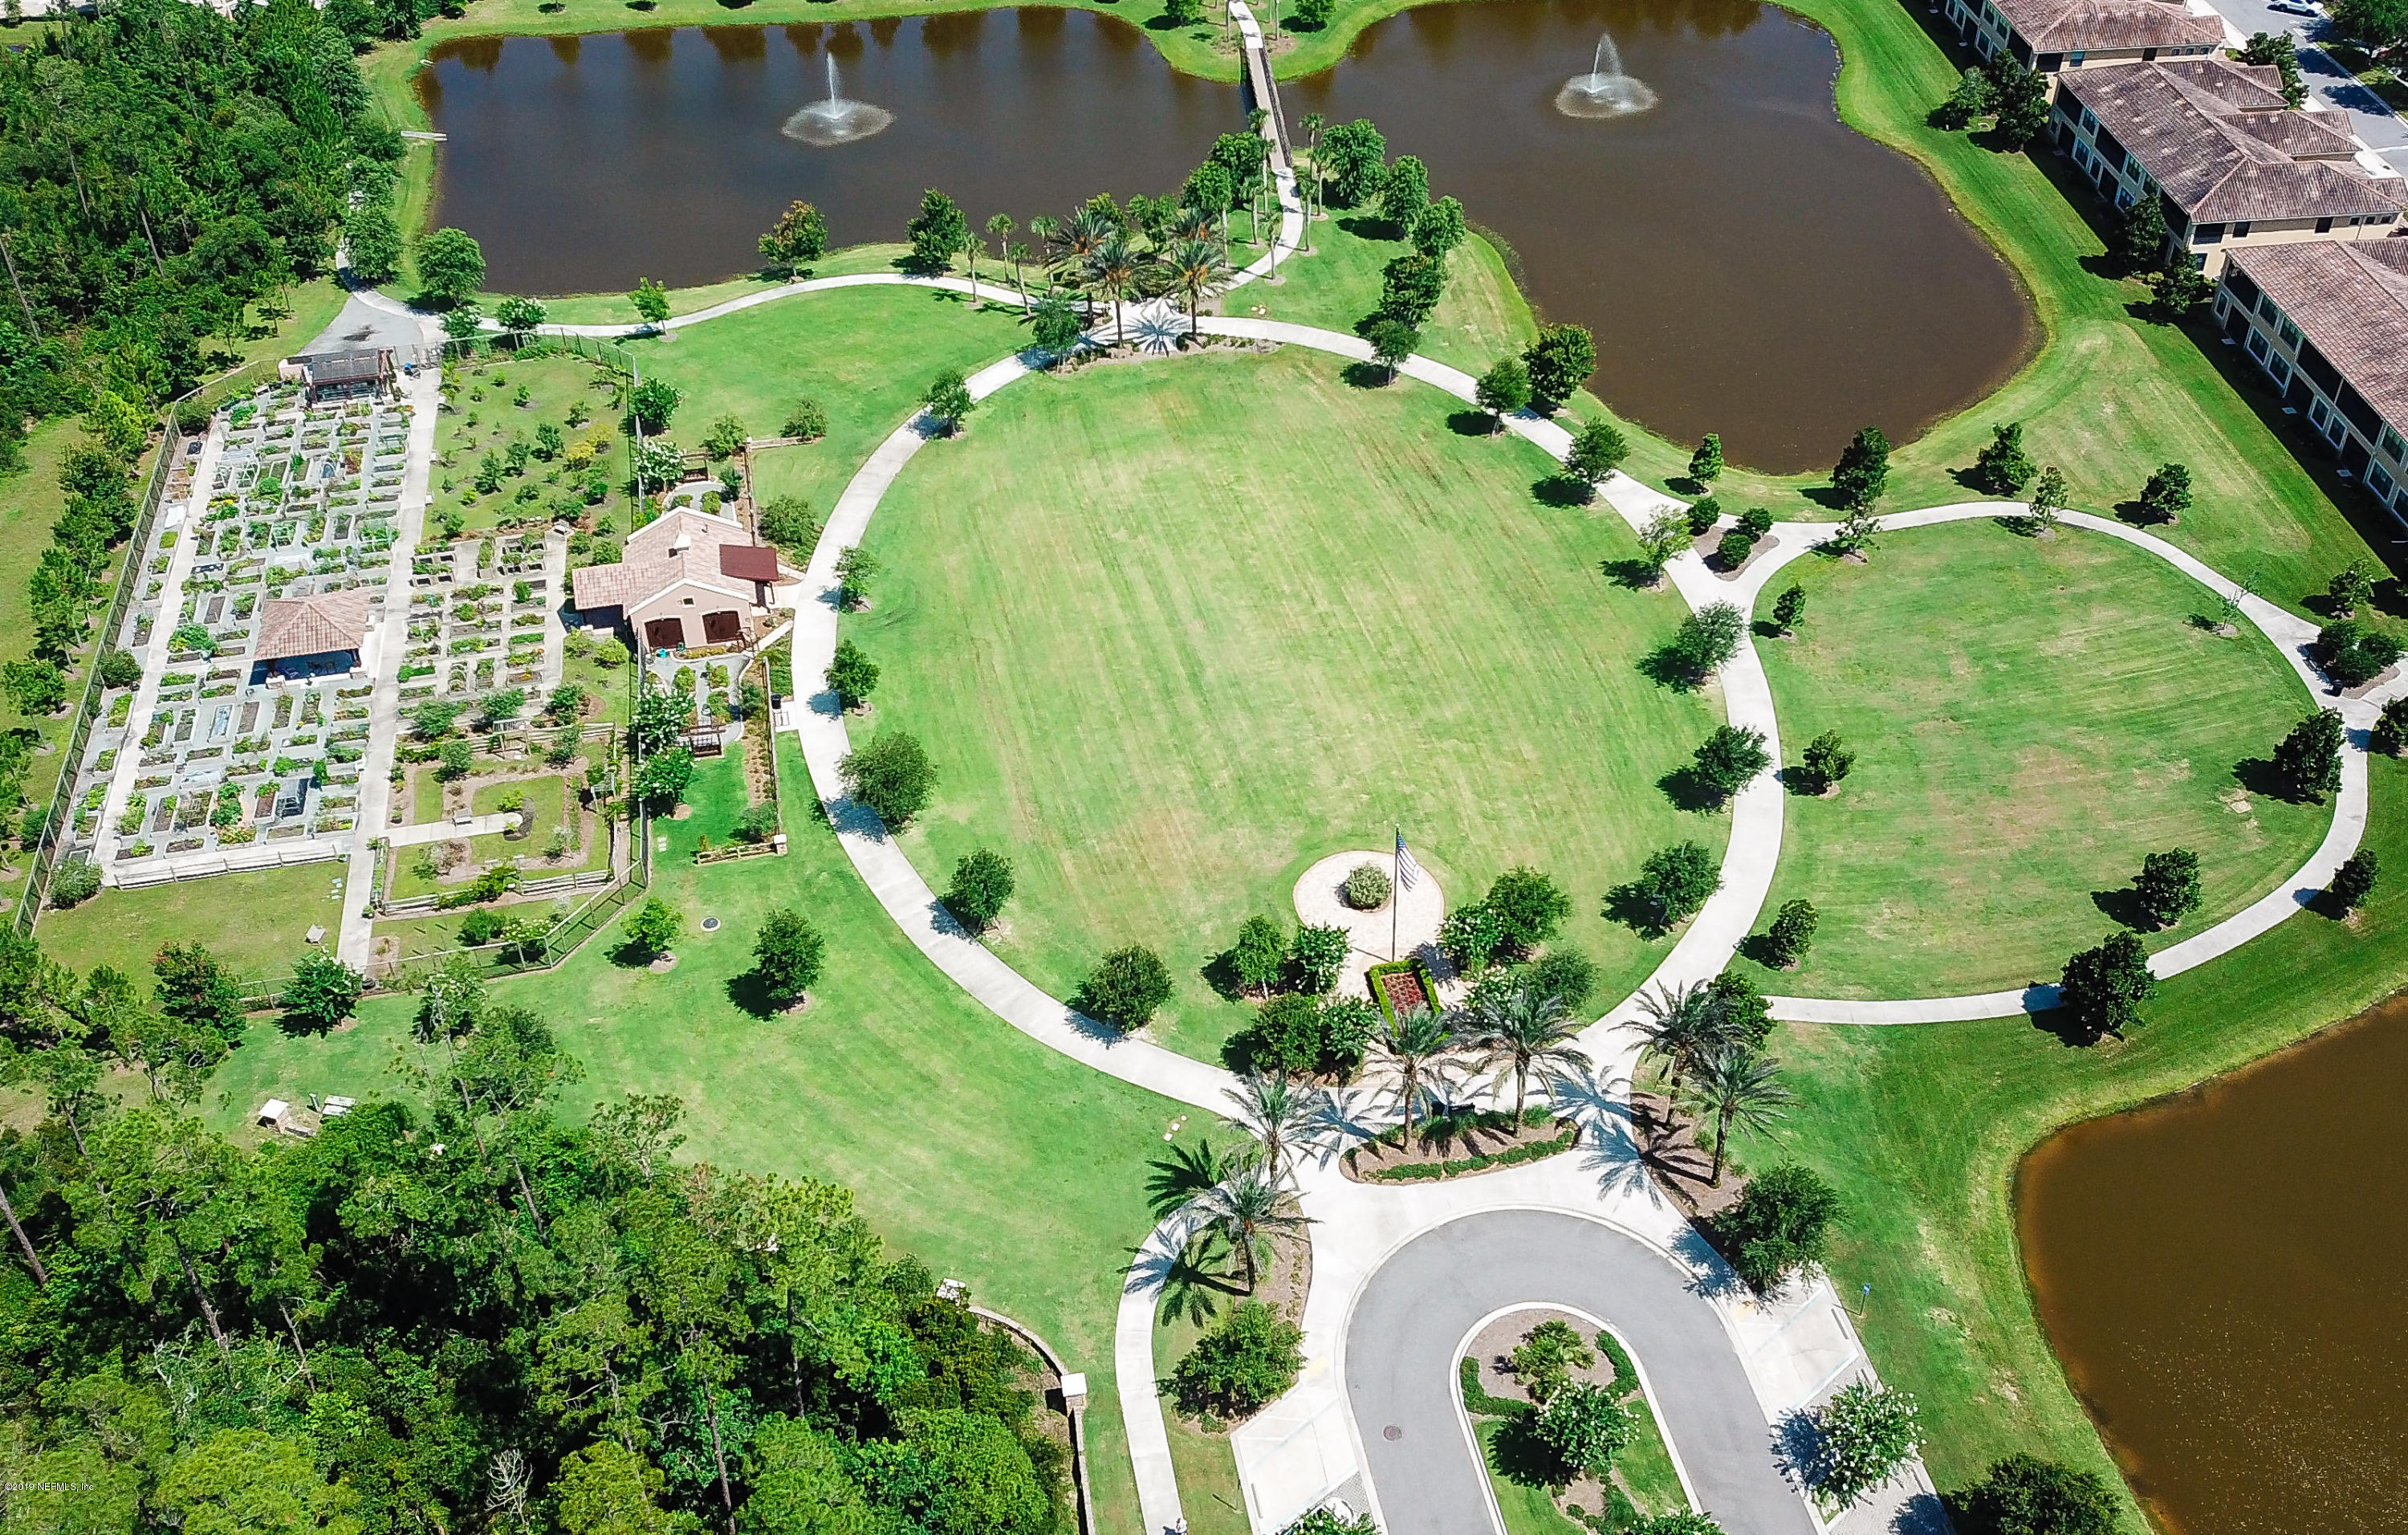 192 ORCHARD PASS, PONTE VEDRA, FLORIDA 32081, 2 Bedrooms Bedrooms, ,2 BathroomsBathrooms,Condo,For sale,ORCHARD PASS,995675